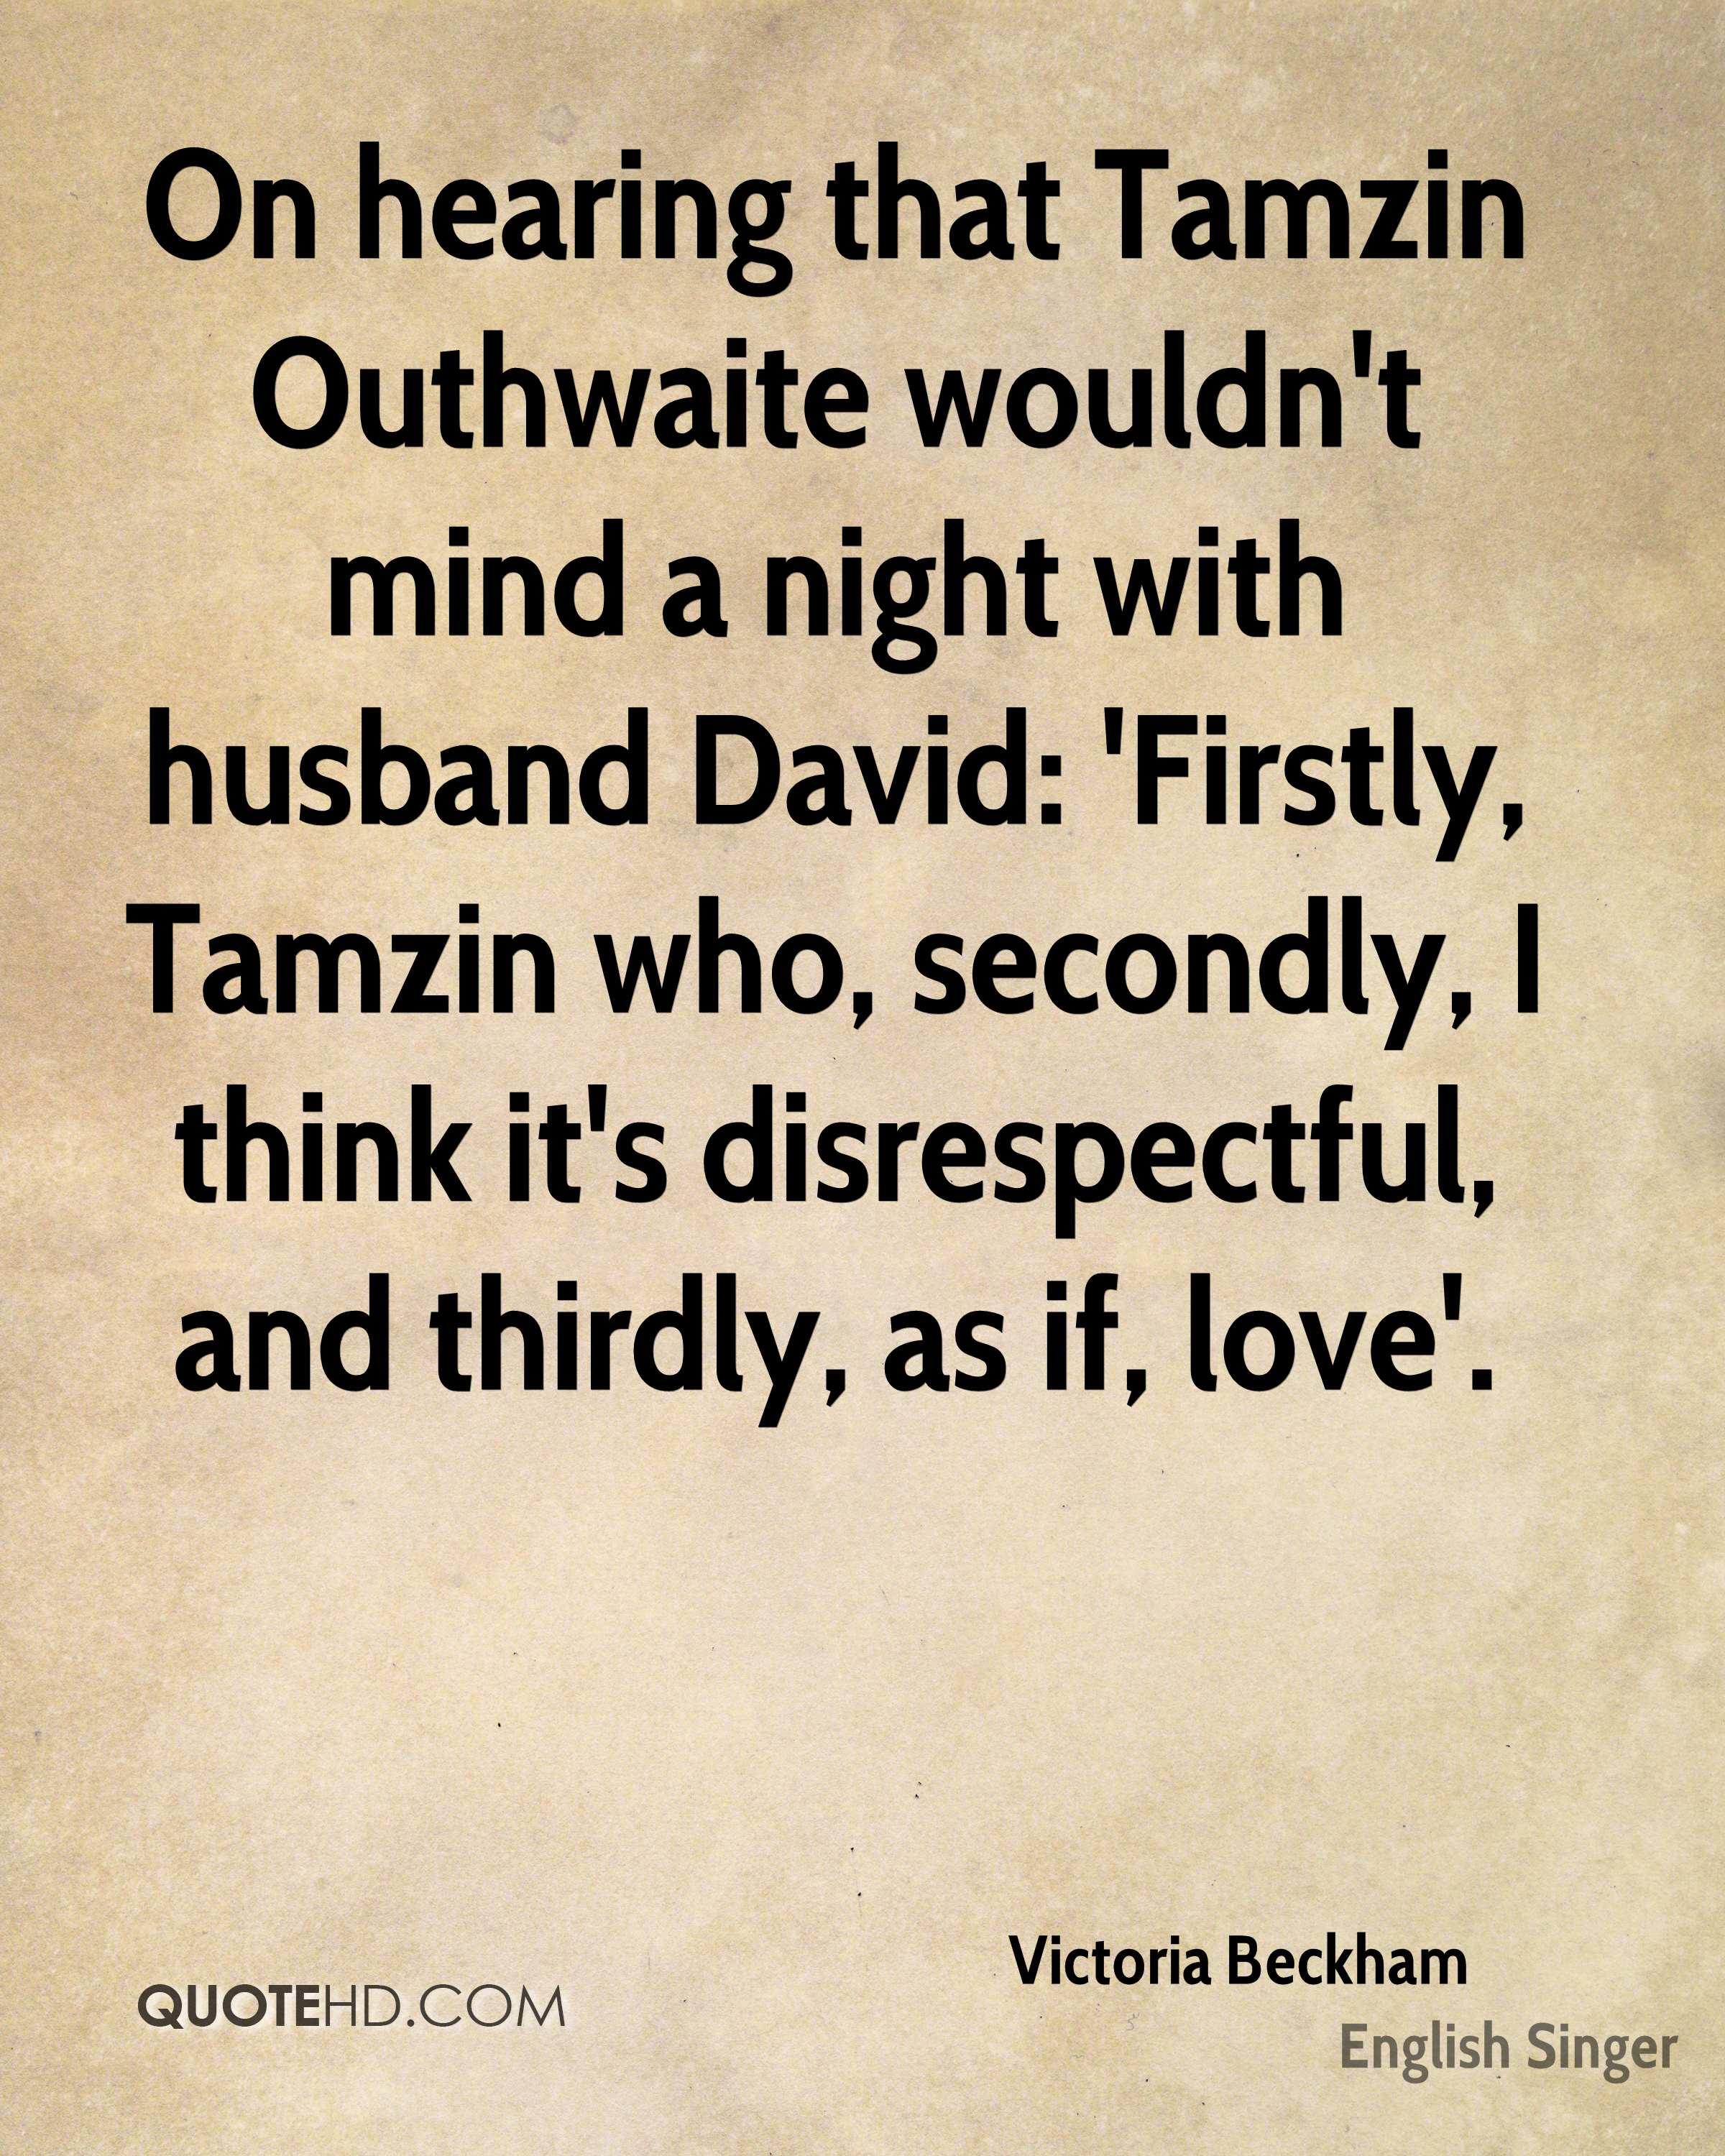 On hearing that Tamzin Outhwaite wouldn't mind a night with husband David: 'Firstly, Tamzin who, secondly, I think it's disrespectful, and thirdly, as if, love'.